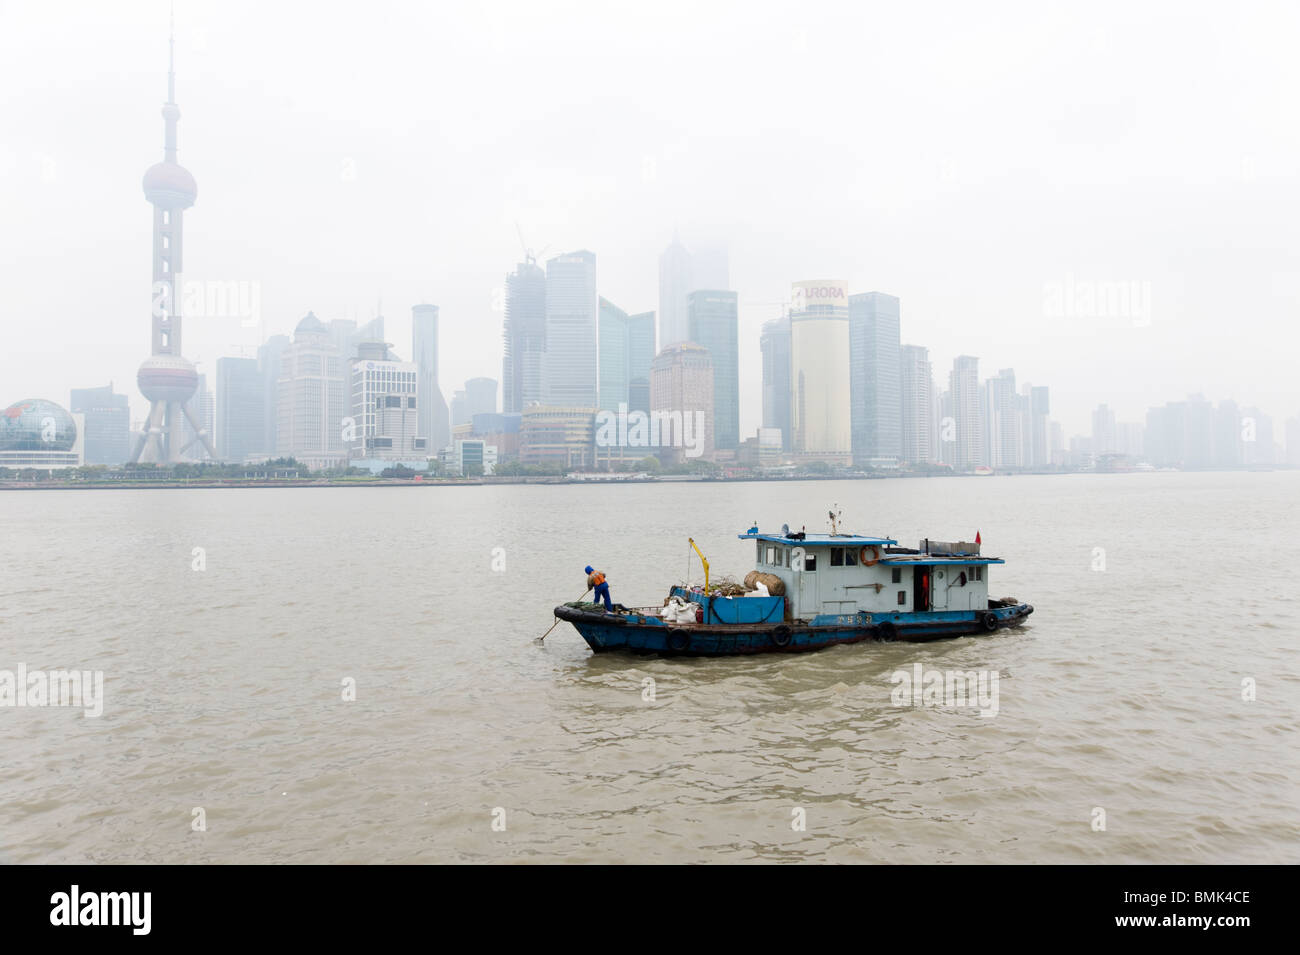 Small boat scooping up litter on the Huangpu River, Shanghai, China Stock Photo